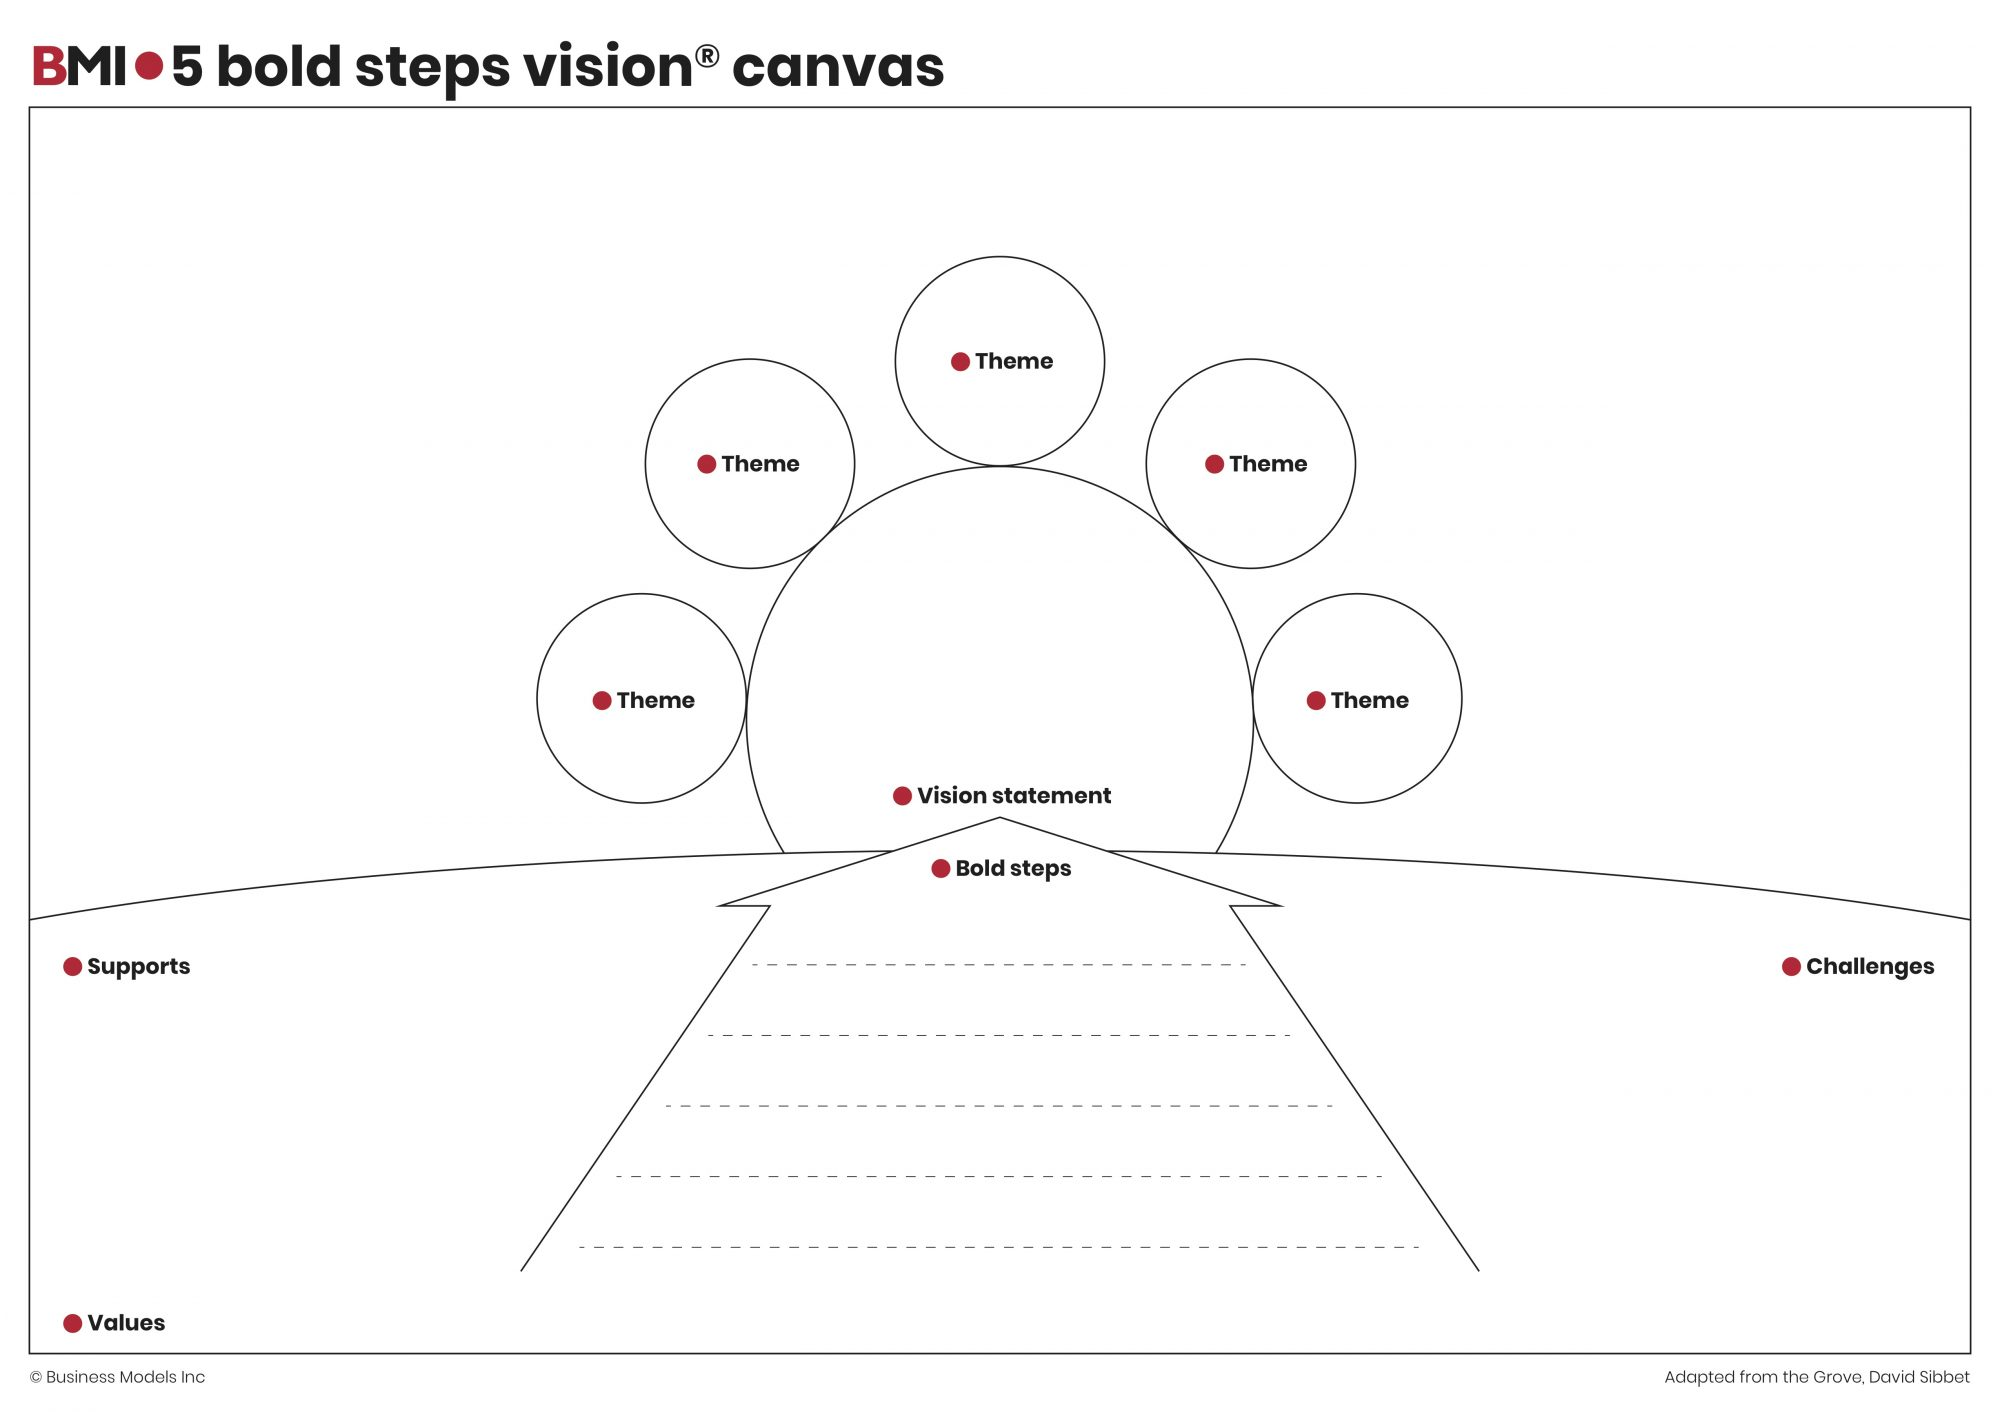 5 Bold Steps vision canvas